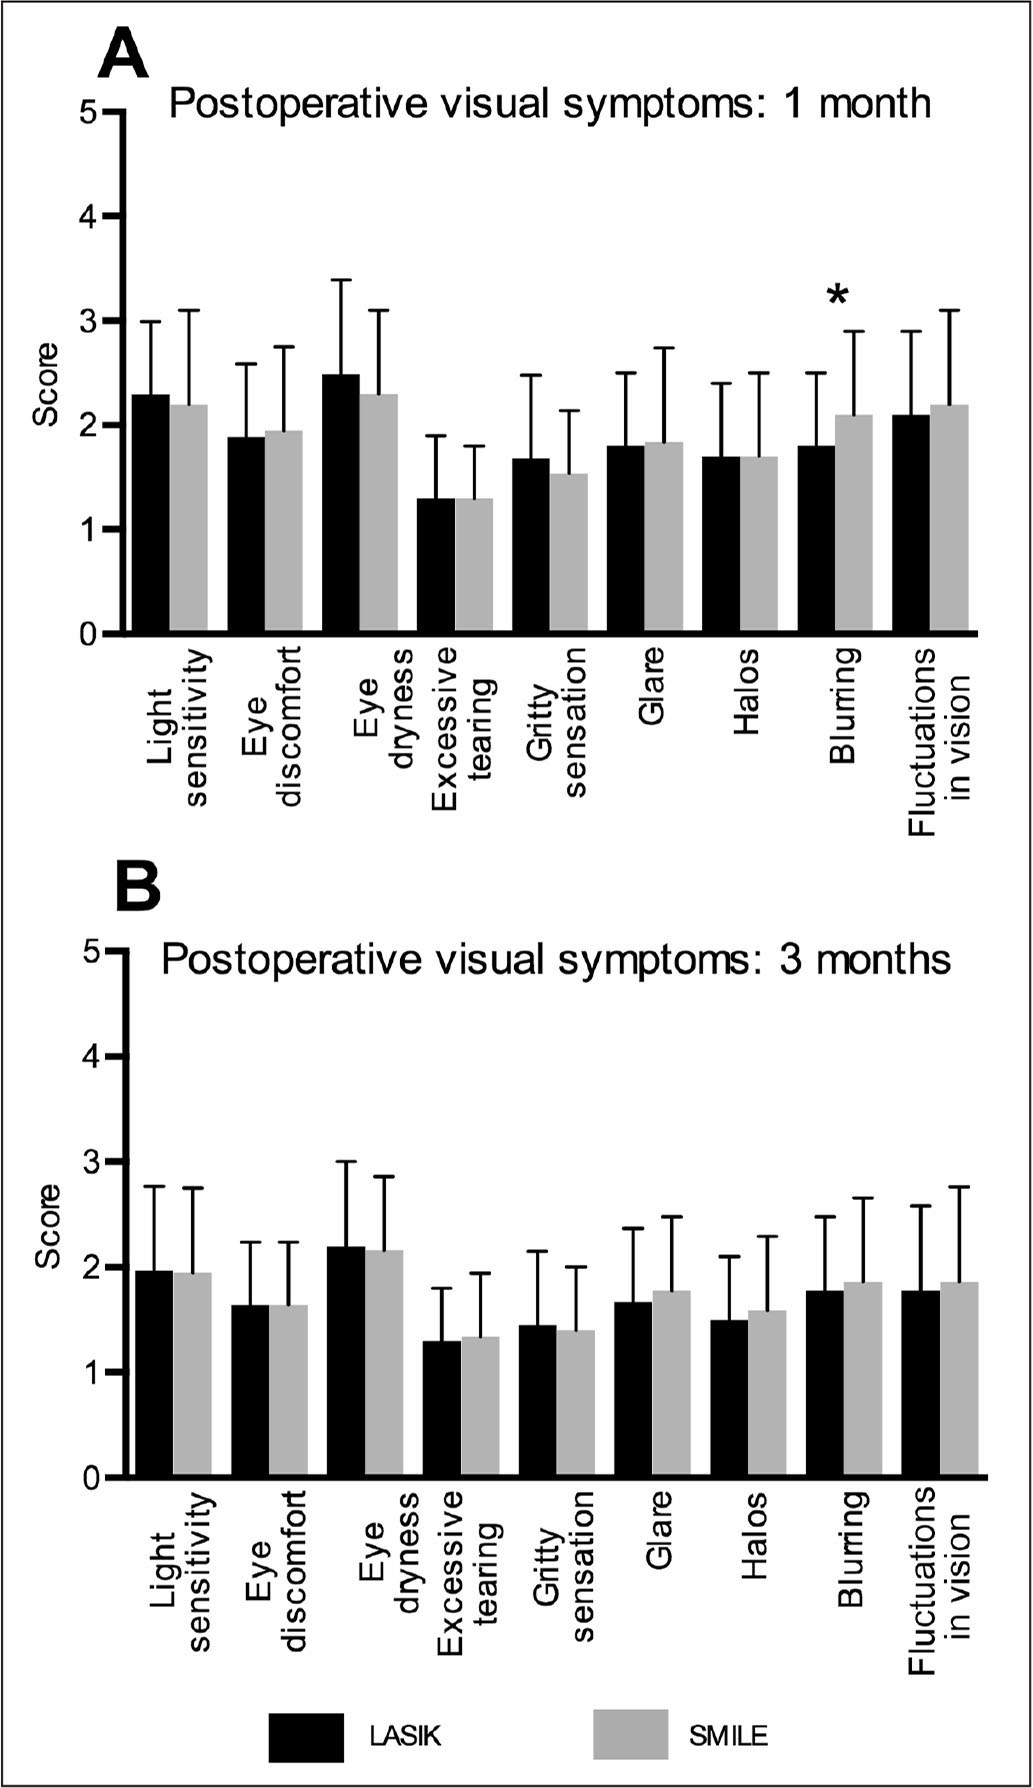 Postoperative visual symptoms at (A) 1 and (B) 3 months, scored from 0 = none to 5 = extreme. Asterisk marks significant differences (P < .05). PTK = phototherapeutic keratectomy; CDVA = corrected distance visual acuity; SMILE = small incision lenticule extraction